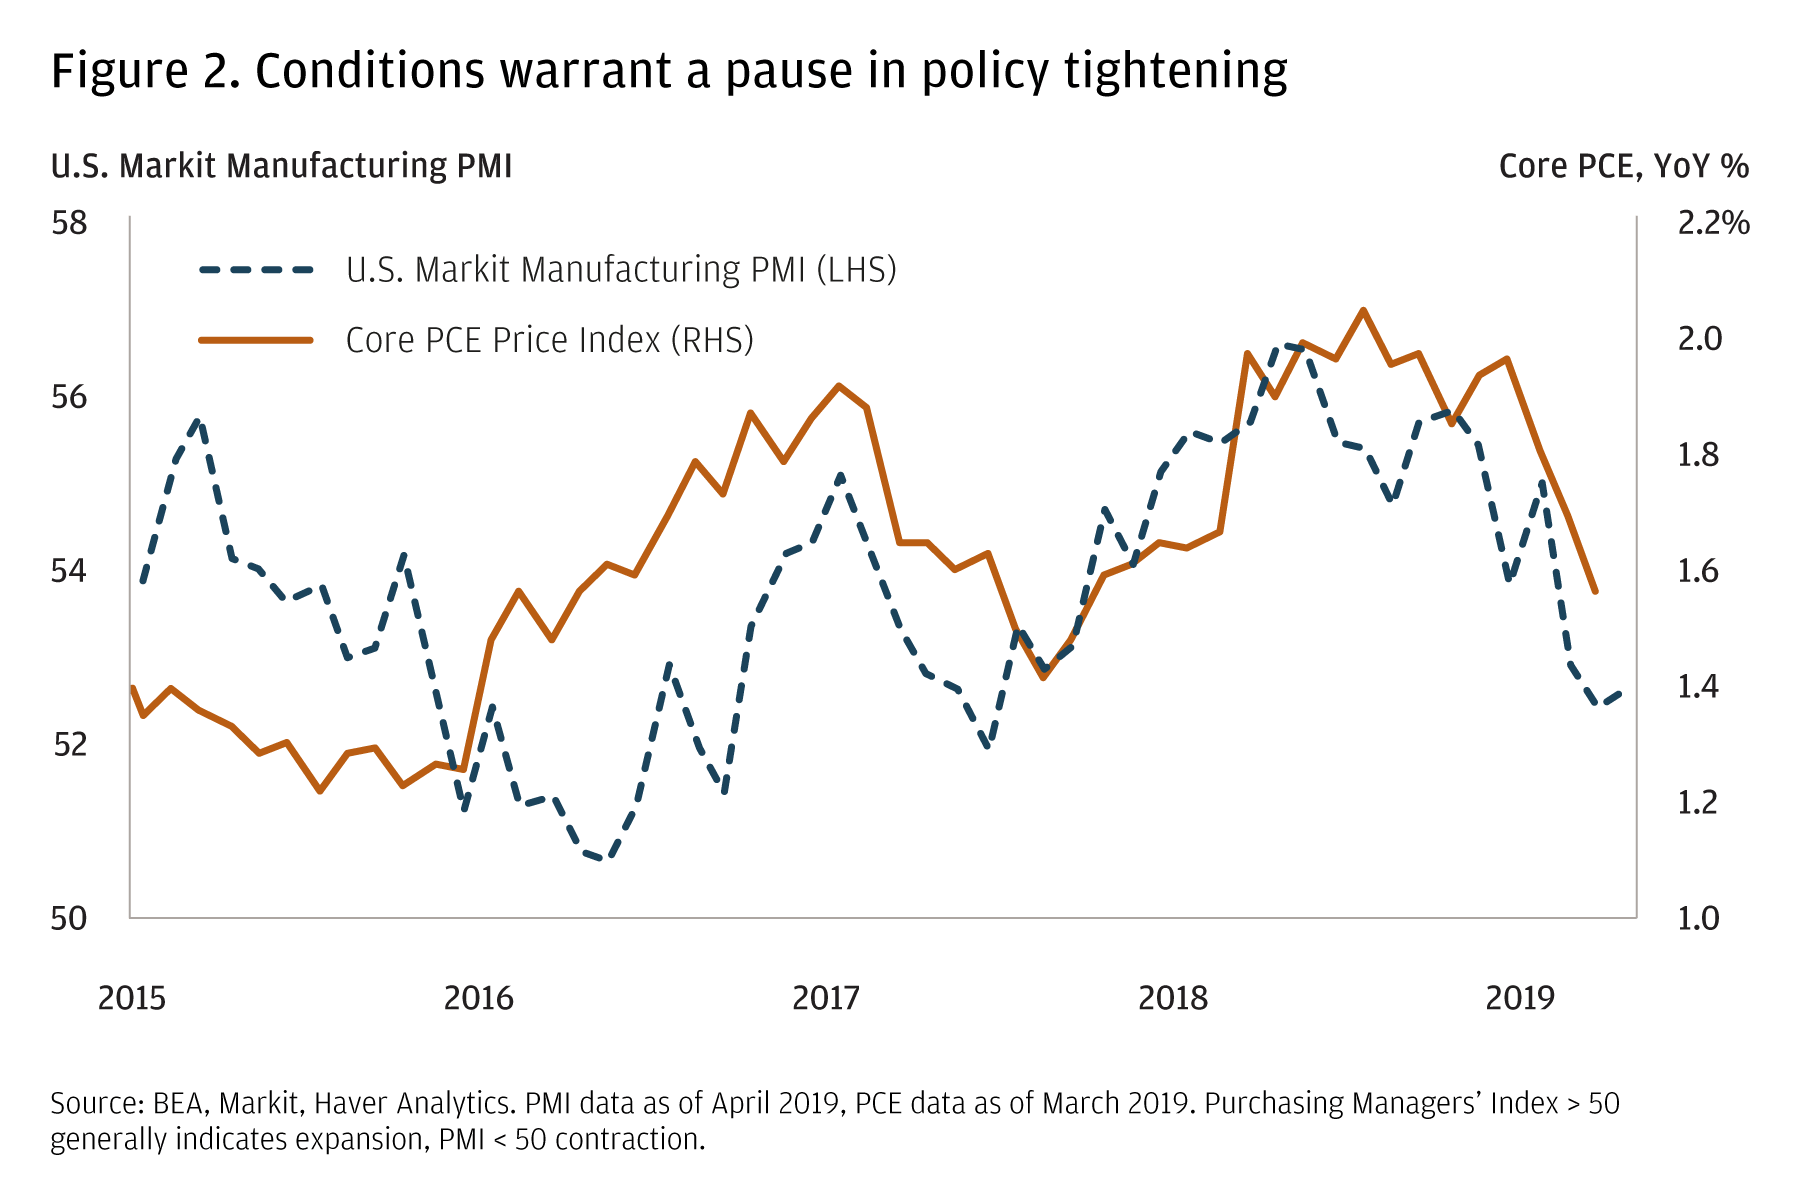 A line graph shows a comparison of the U.S. Markit Manufacturing Purchasing Managers Index with the U.S. Core Personal Consumption Expenditures Price Index. Both indices have trended down since the end of 2018, indicating that U.S. growth is slowing.